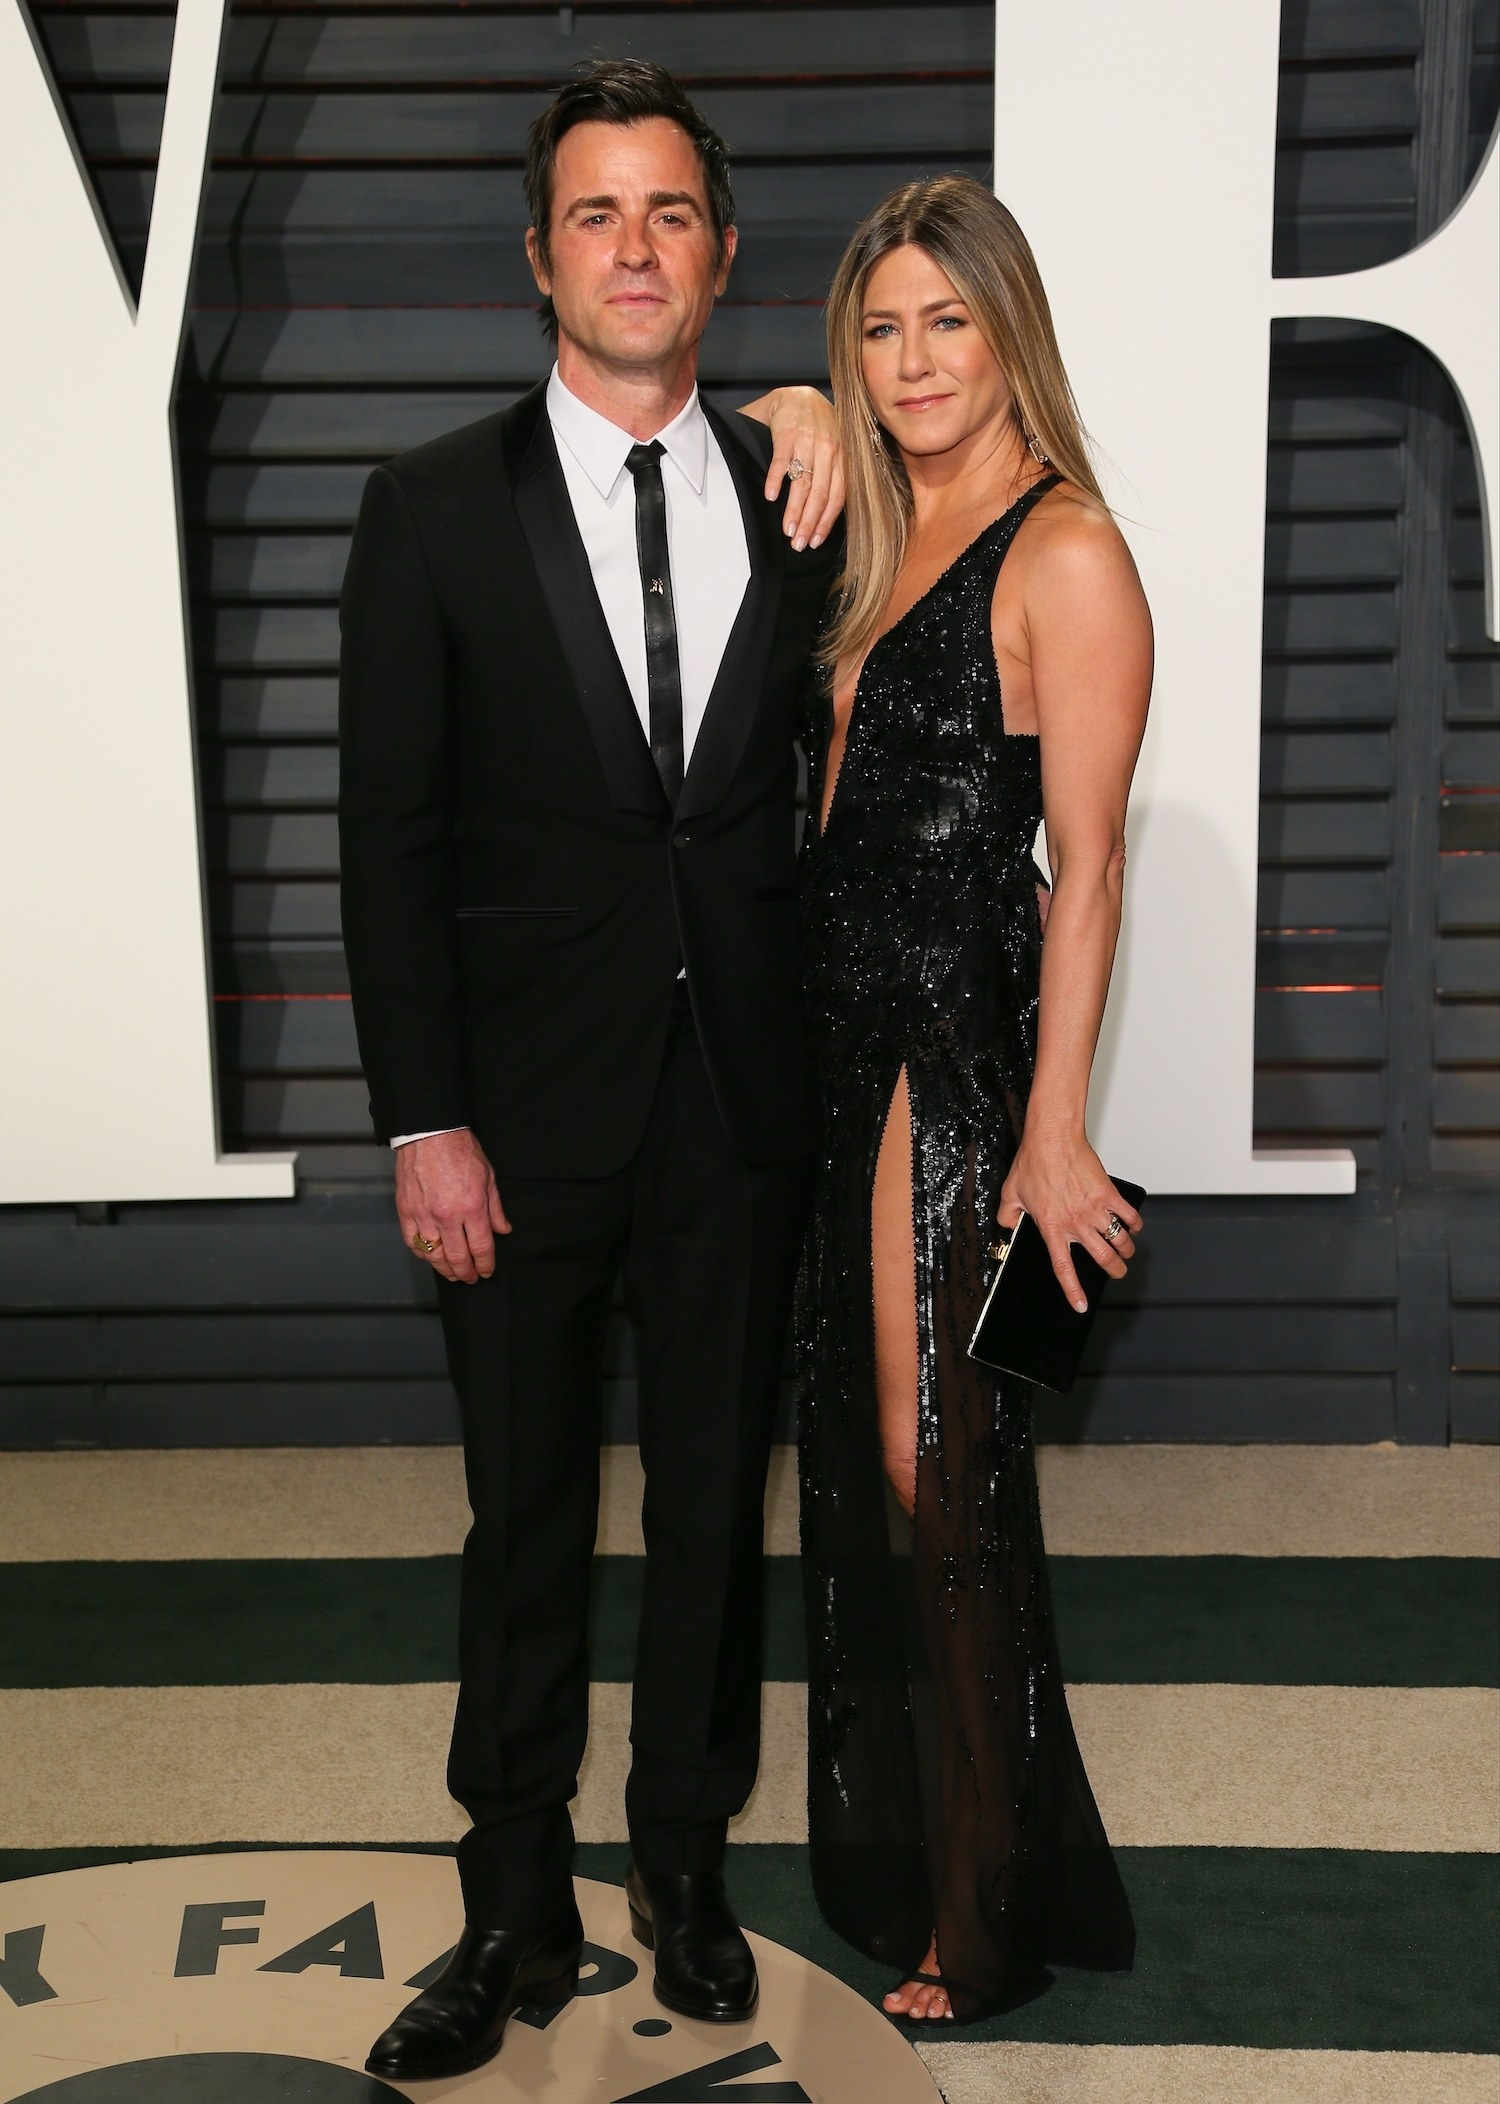 Aniston and Theroux at the 2017 Vanity Fair Oscar Party